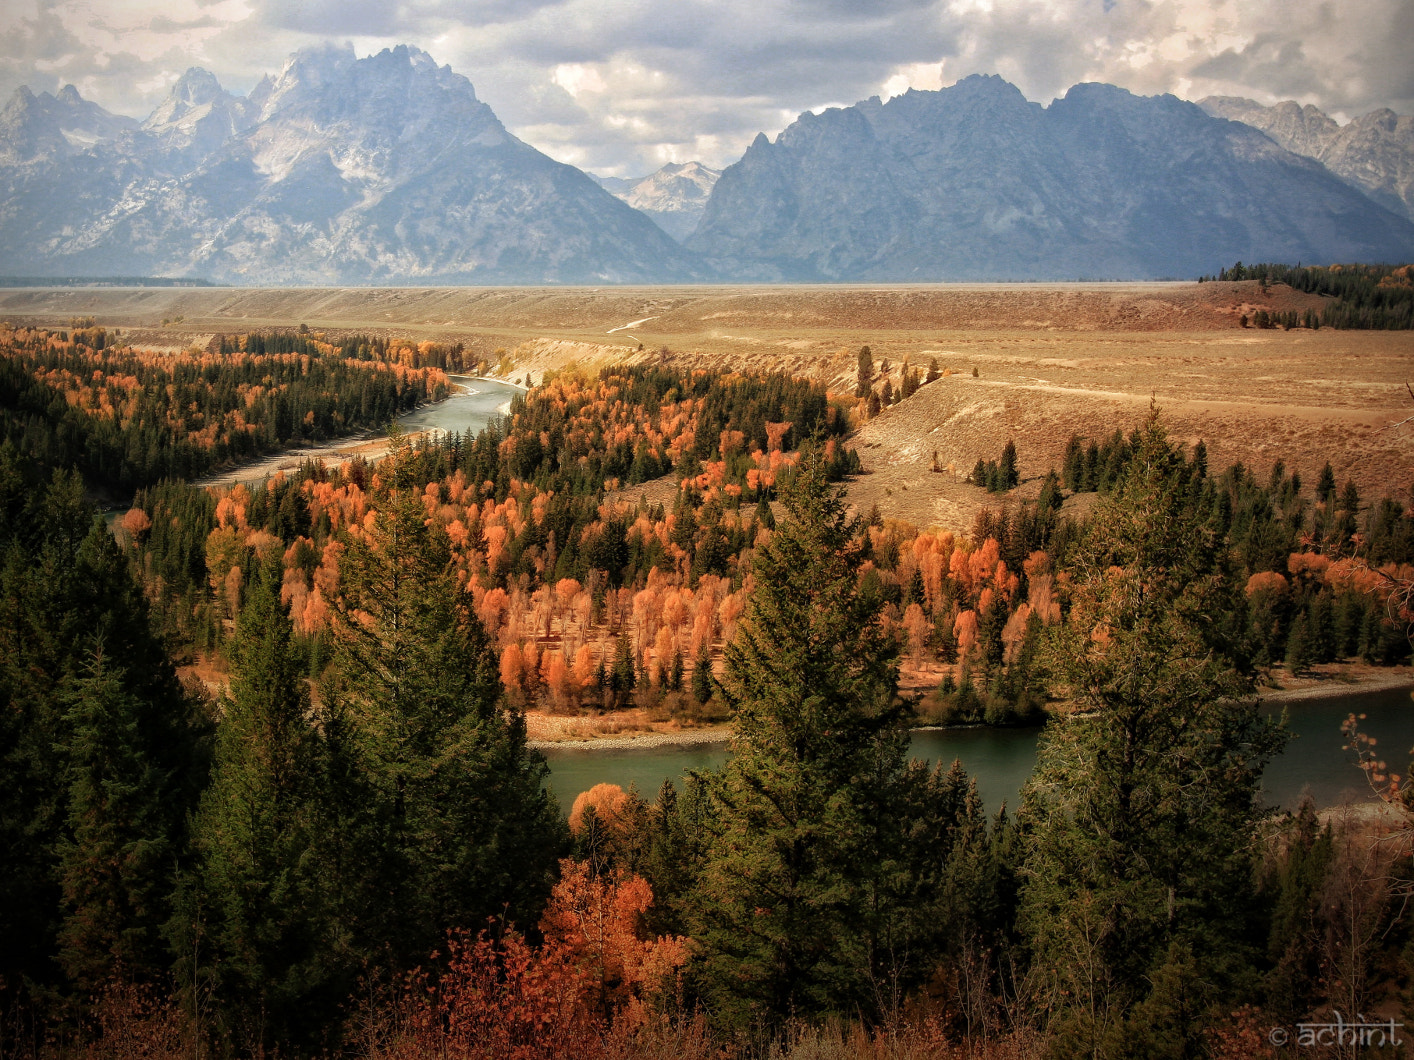 Photograph The Overlook by Achint Thomas on 500px